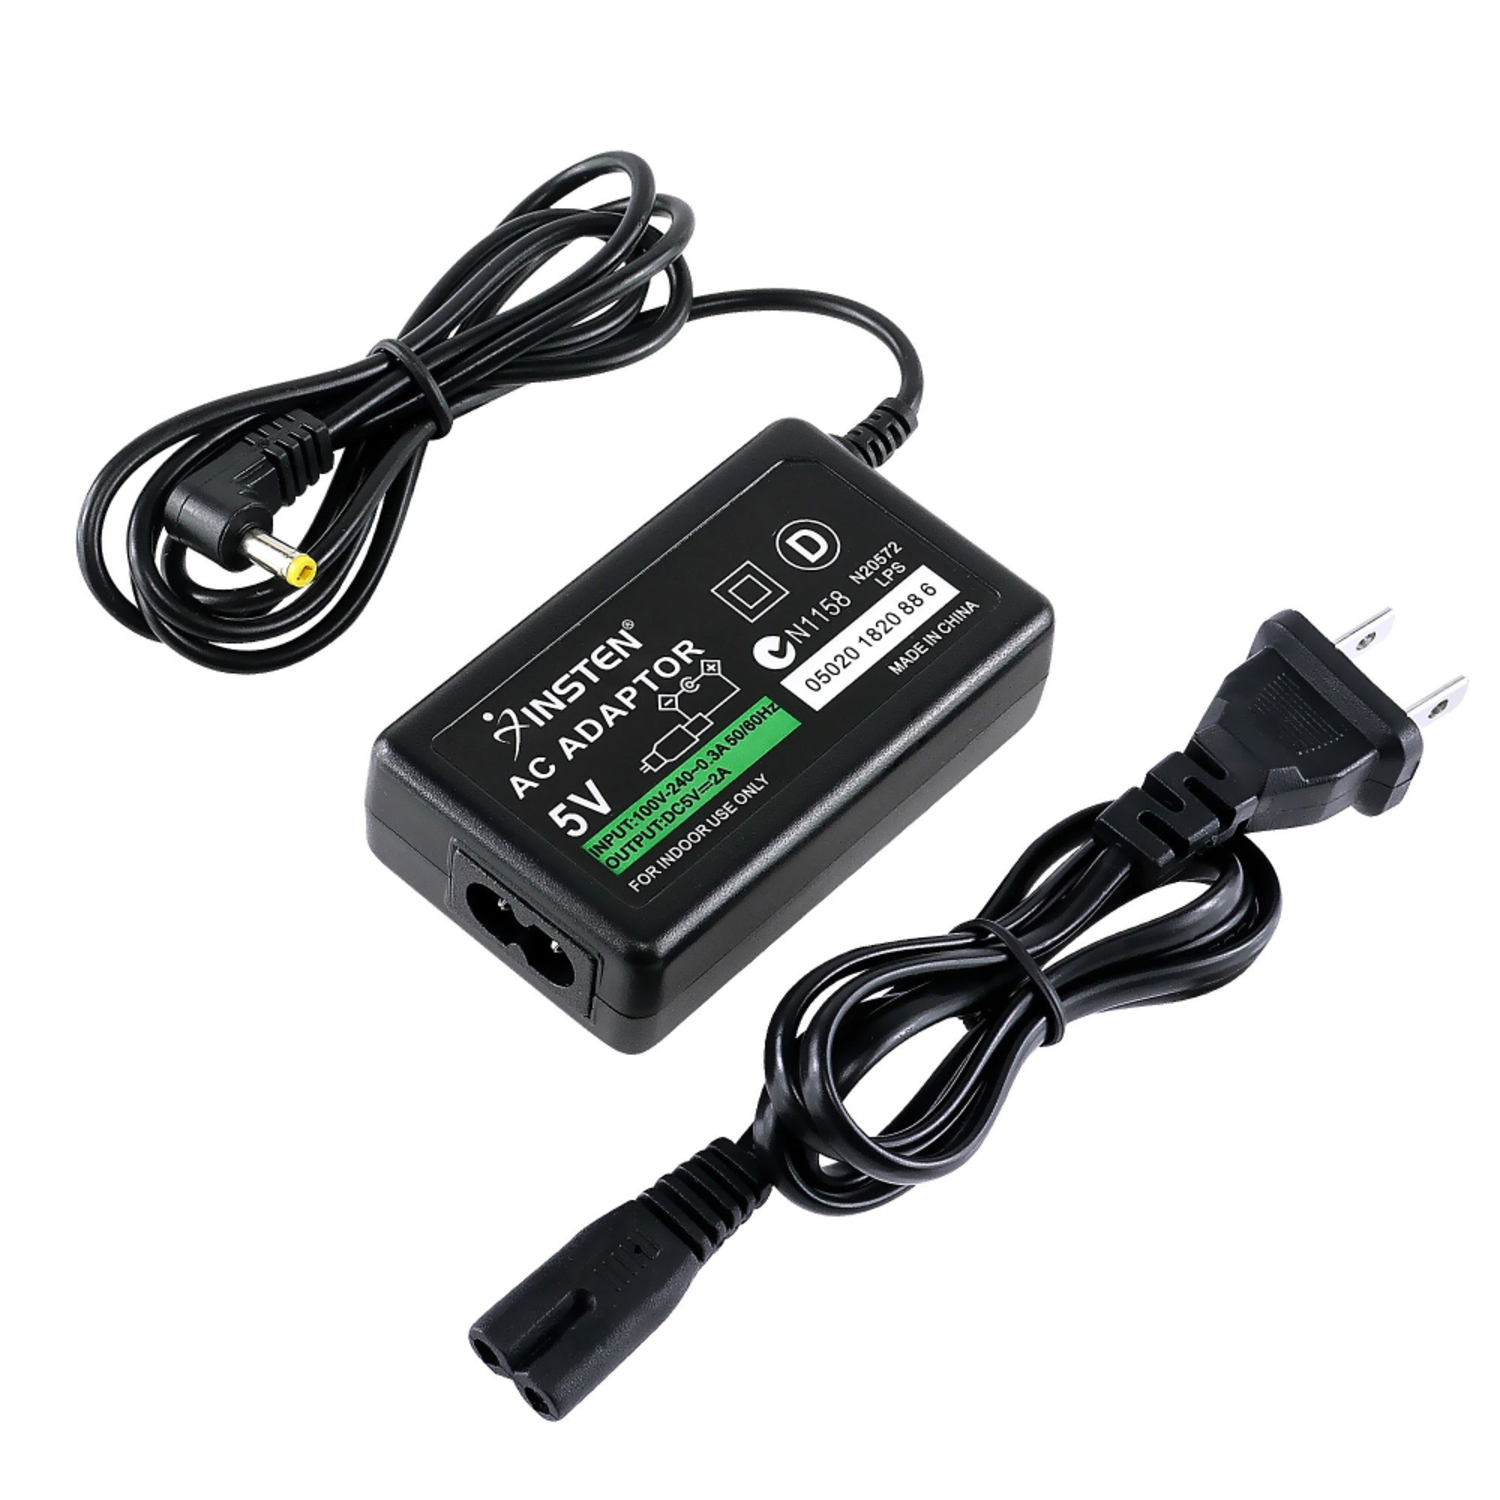 Insten Travel Charger AC Power Supply Outlet Adapter For Sony PSP (Fit 3000 2000 1000) PlayStation Portable